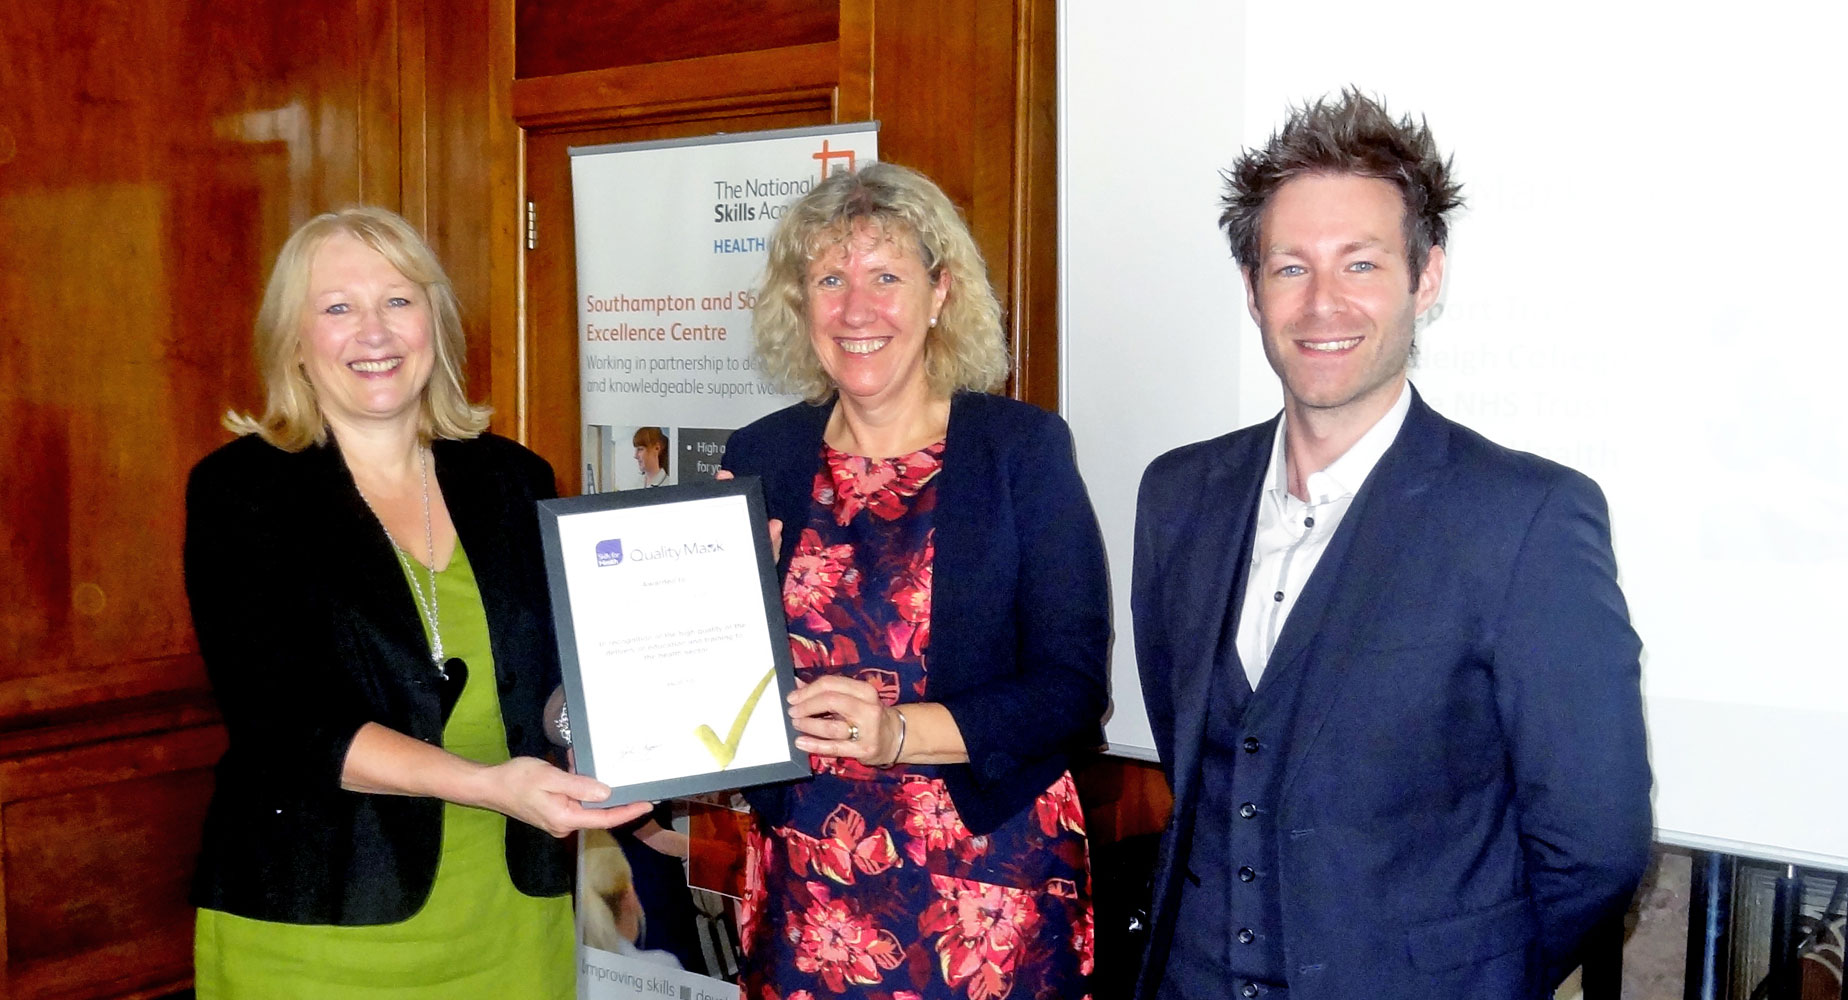 We've been awarded the 'Skills for Health Quality Mark'